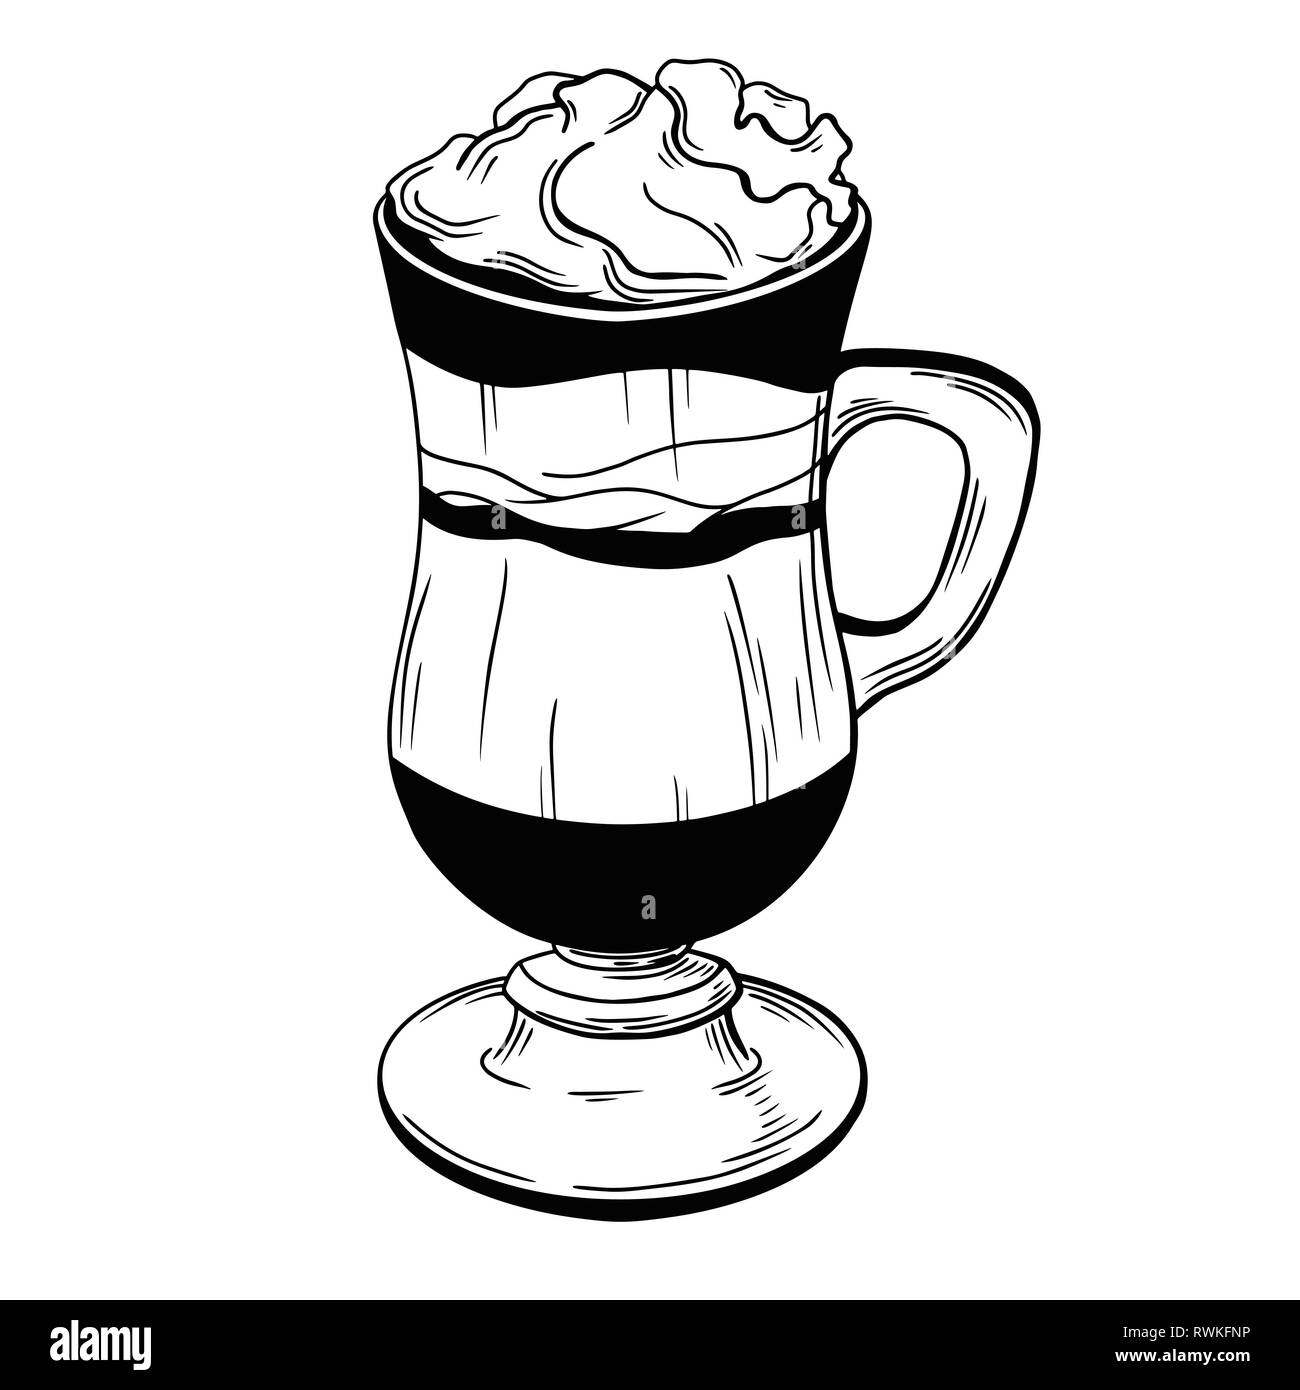 Coffee cocktail isolated on white background. Vector illustration of a sketch style. - Stock Vector